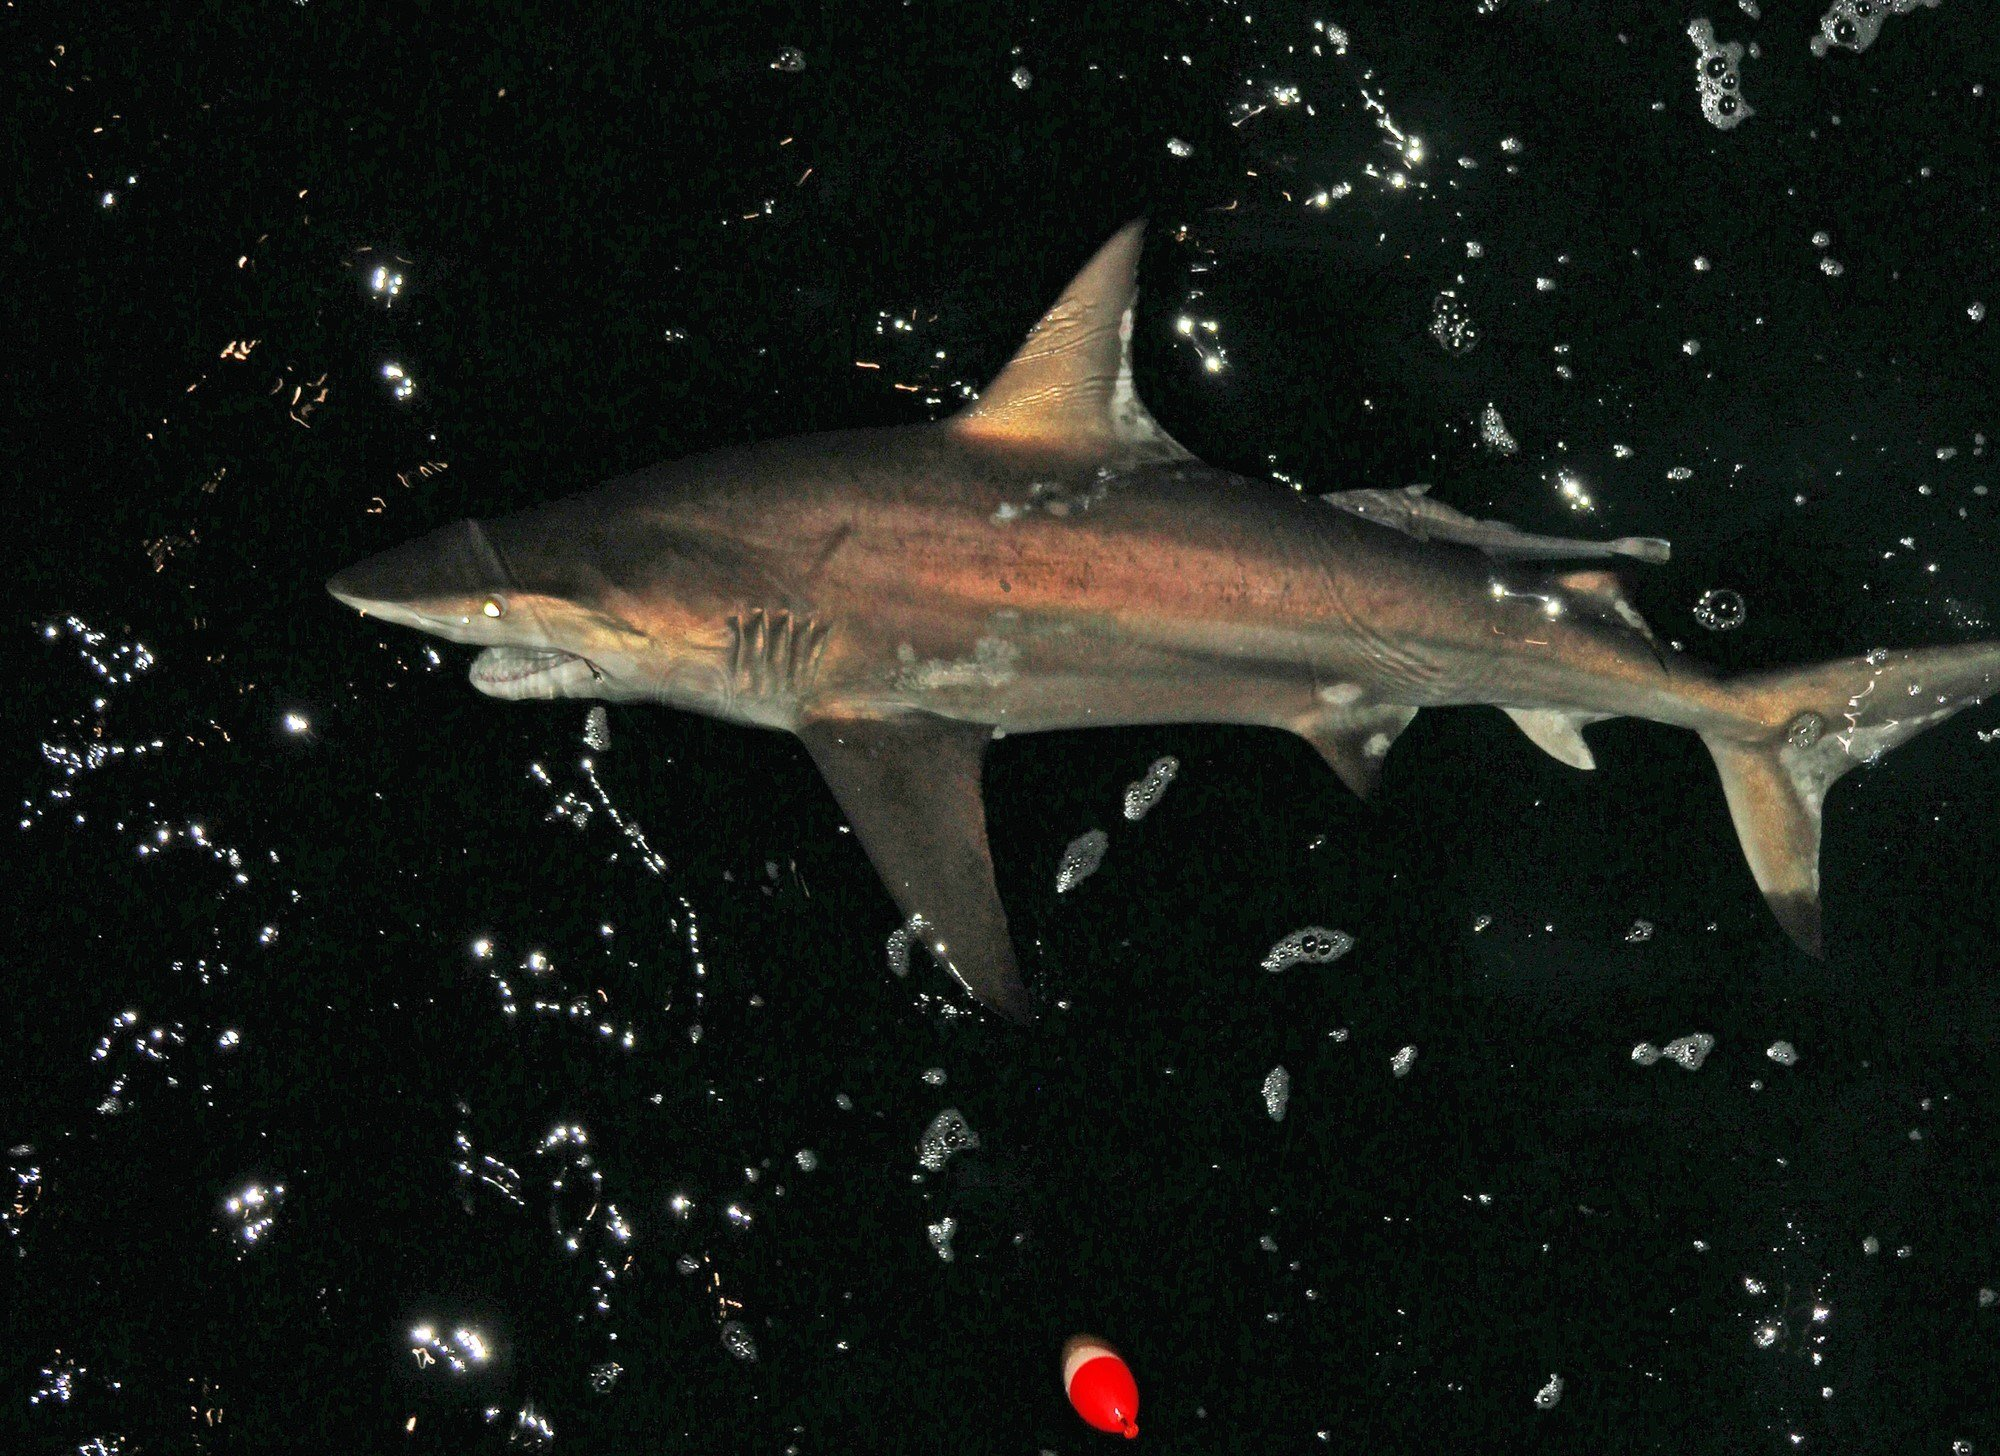 This spinner shark was caught during a previous shark-fishing event. (Photo by David Rainer)